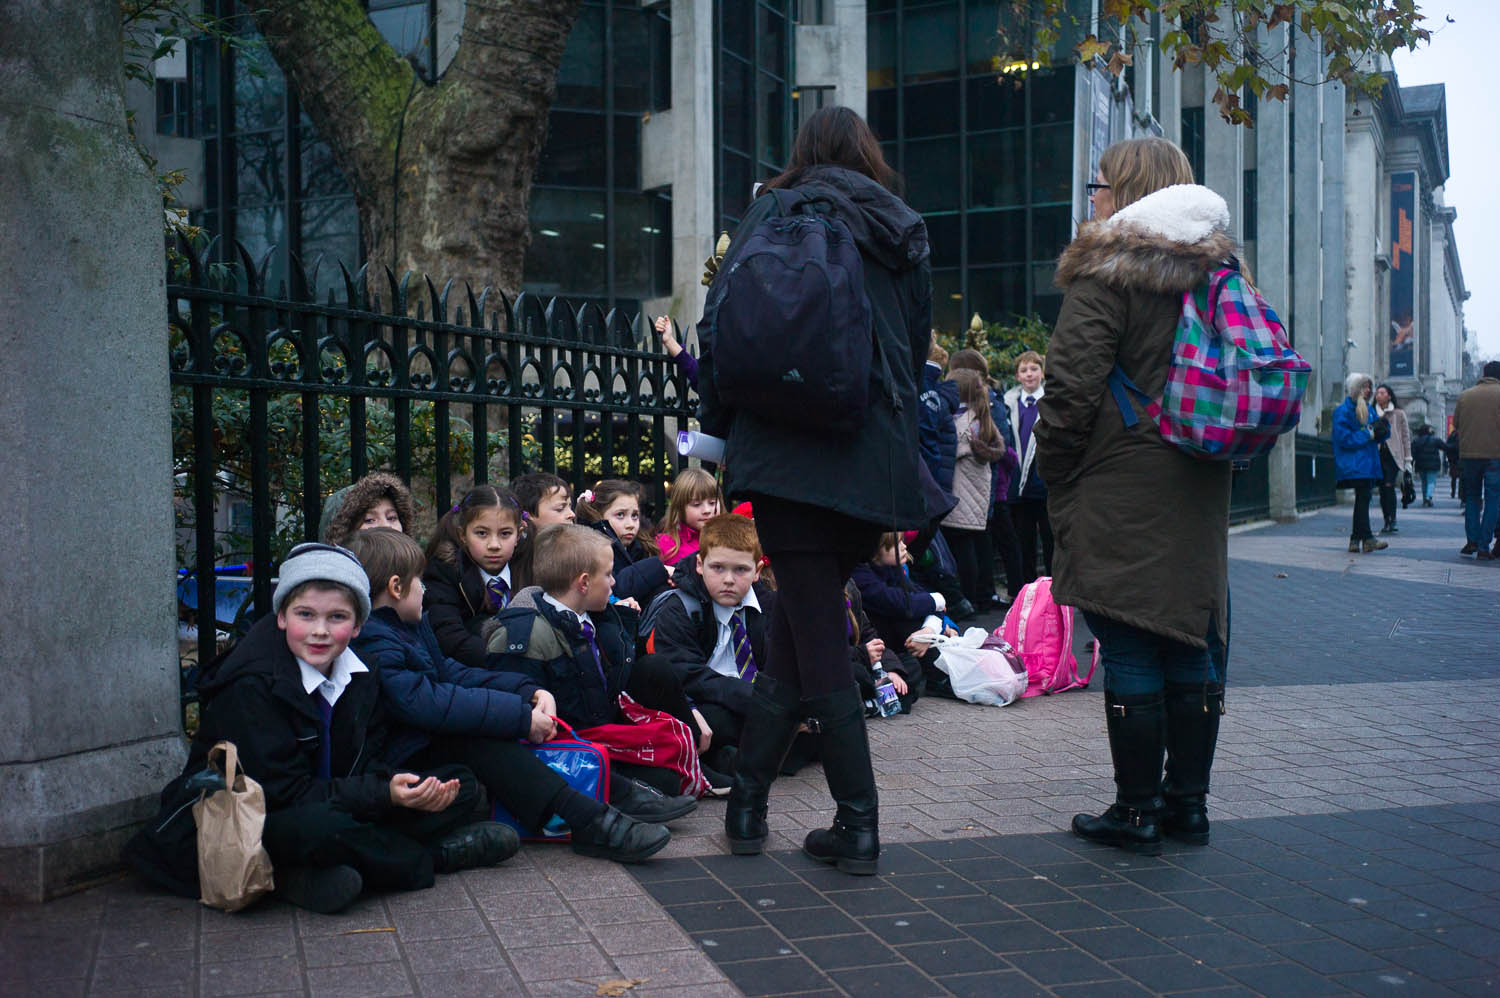 Schoolchildren are seated against a fence near the museums in London